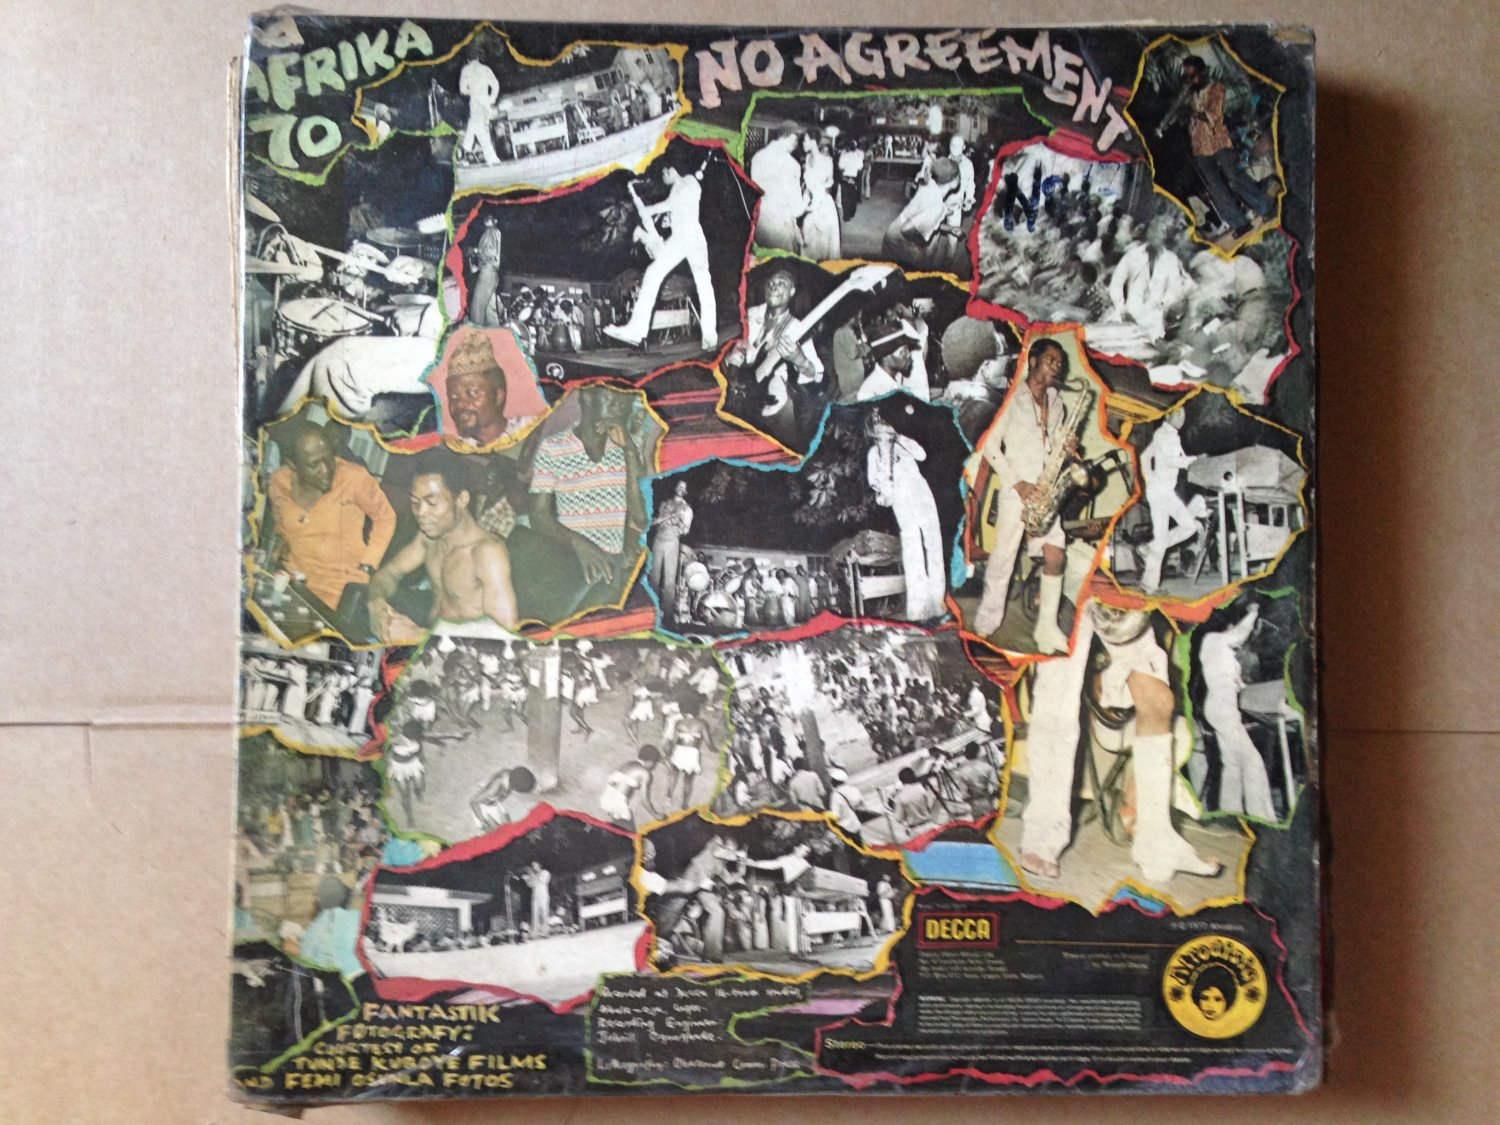 FELA KUTI LP no agreement AFRO BEAT NIGERIA mp3 LISTEN